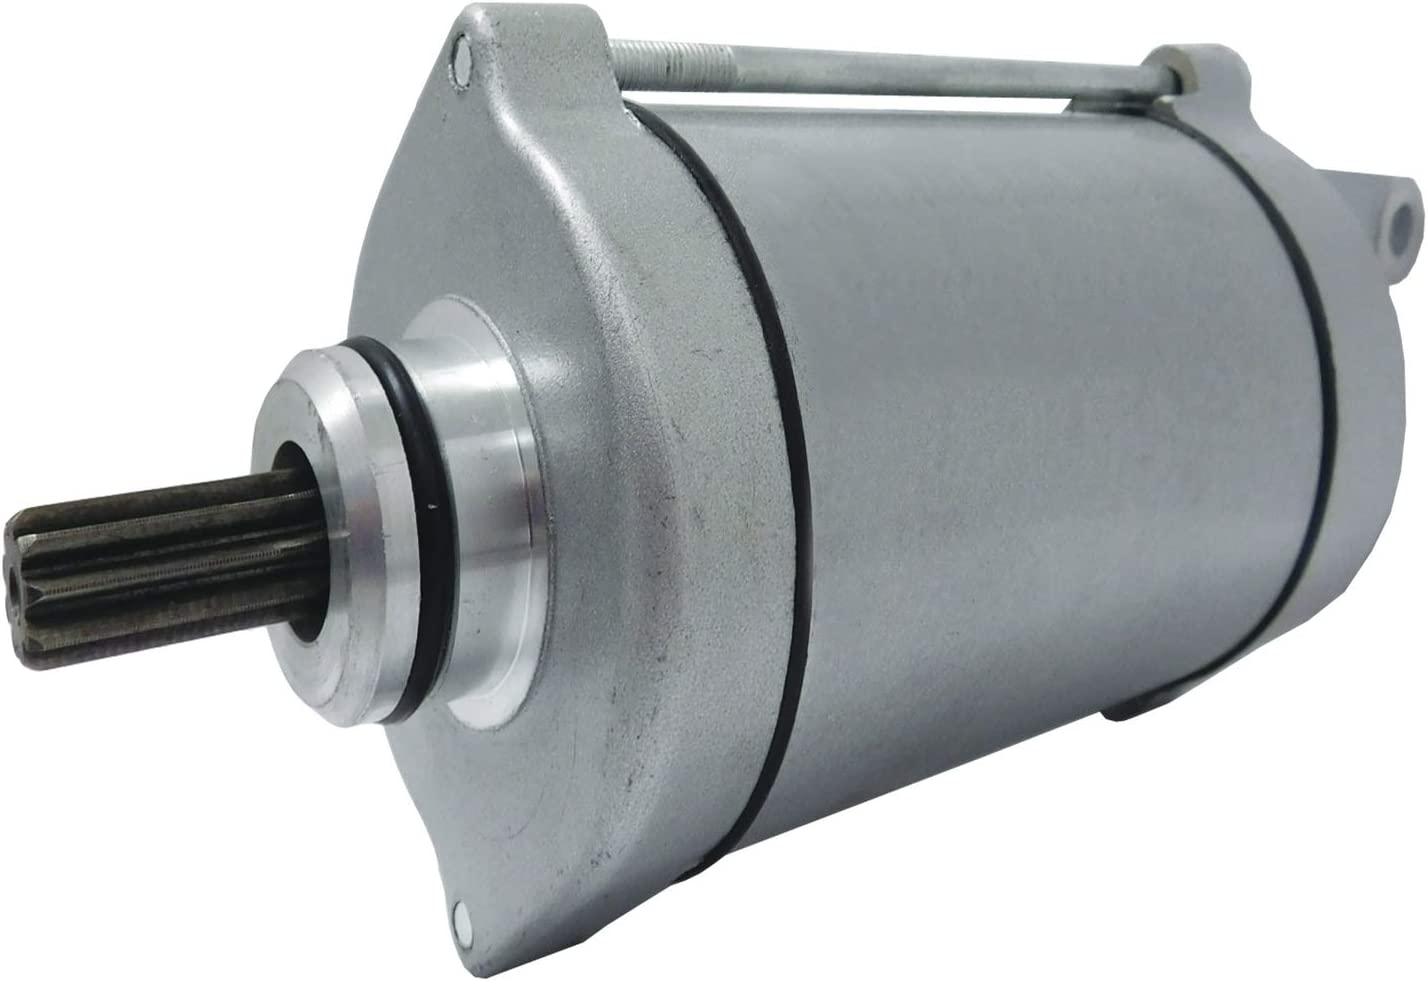 NEW Starter Compatible With Honda 3 Models All Vtx1800 2002-2008 Great interest Don't miss the campaign